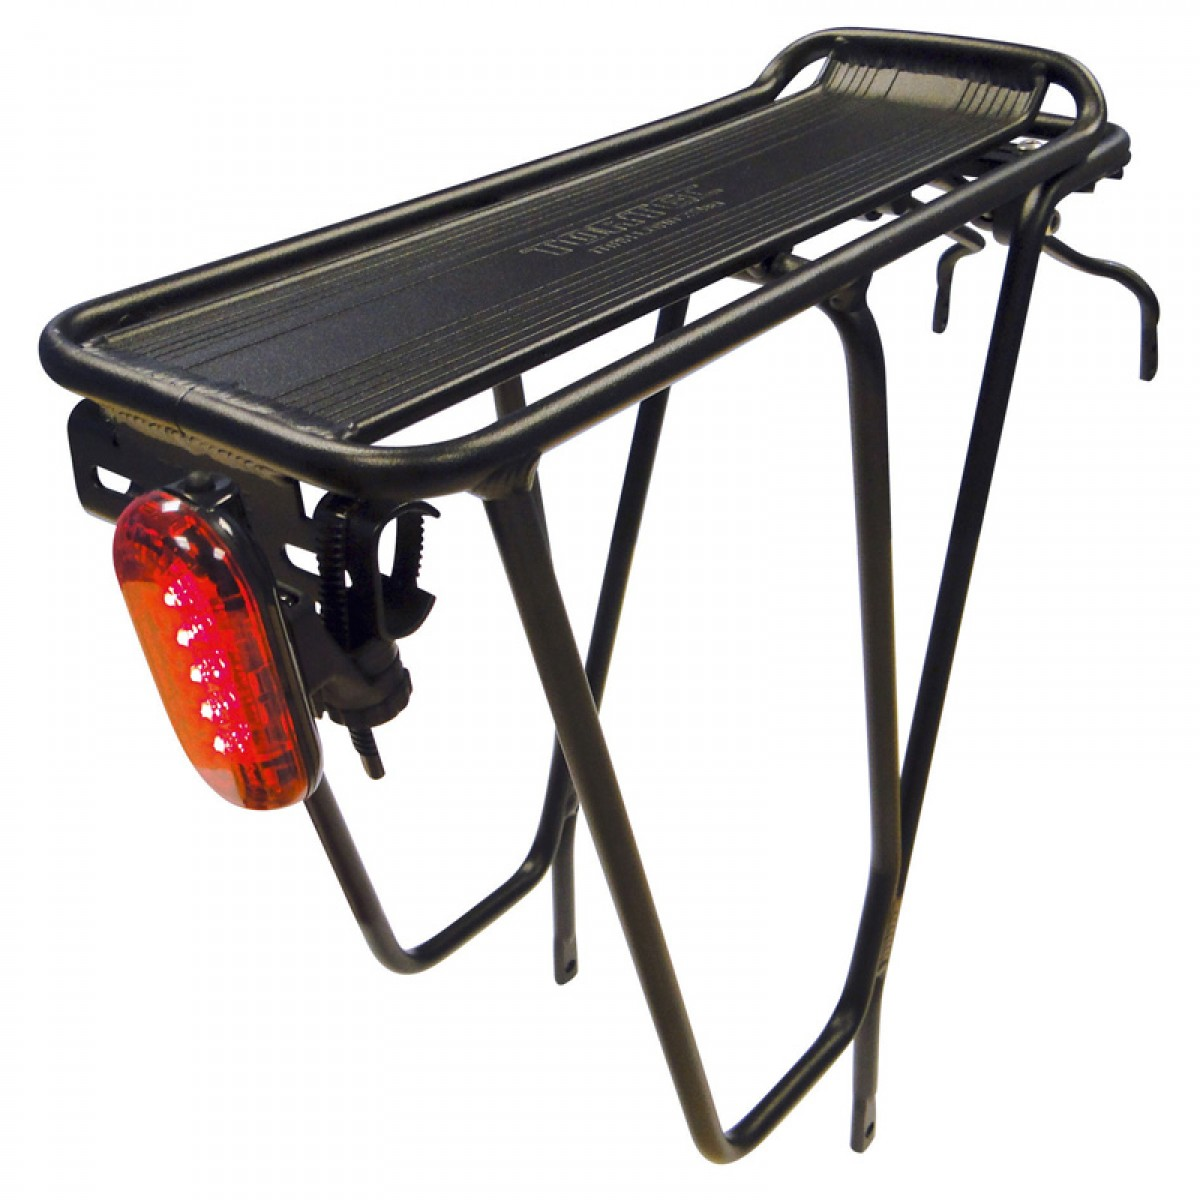 tortec supertour rear pannier rack. Black Bedroom Furniture Sets. Home Design Ideas